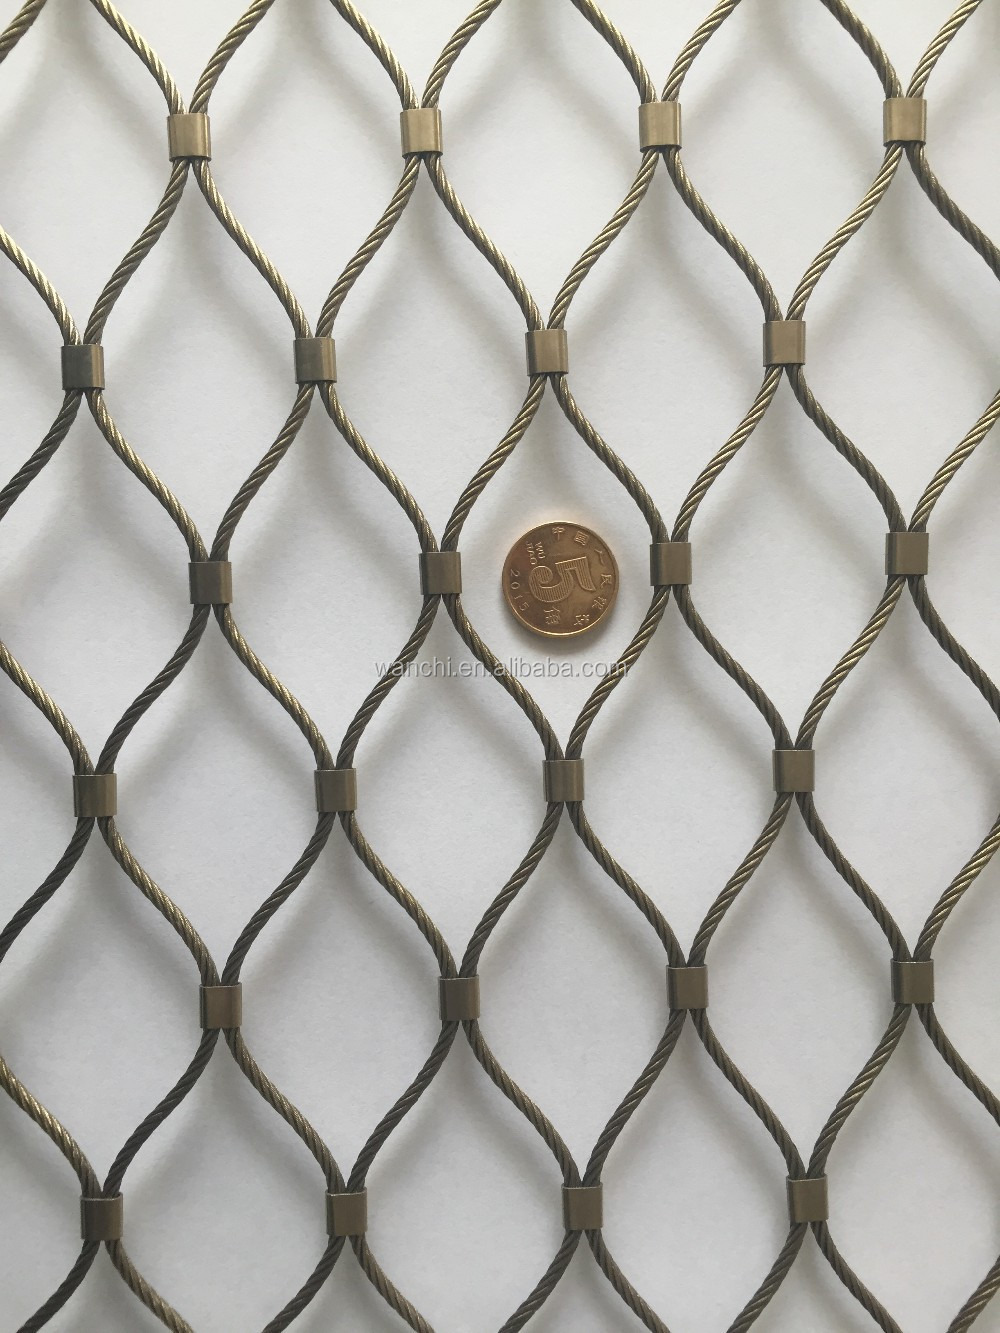 Fish Net Security, Fish Net Security Suppliers and Manufacturers at ...